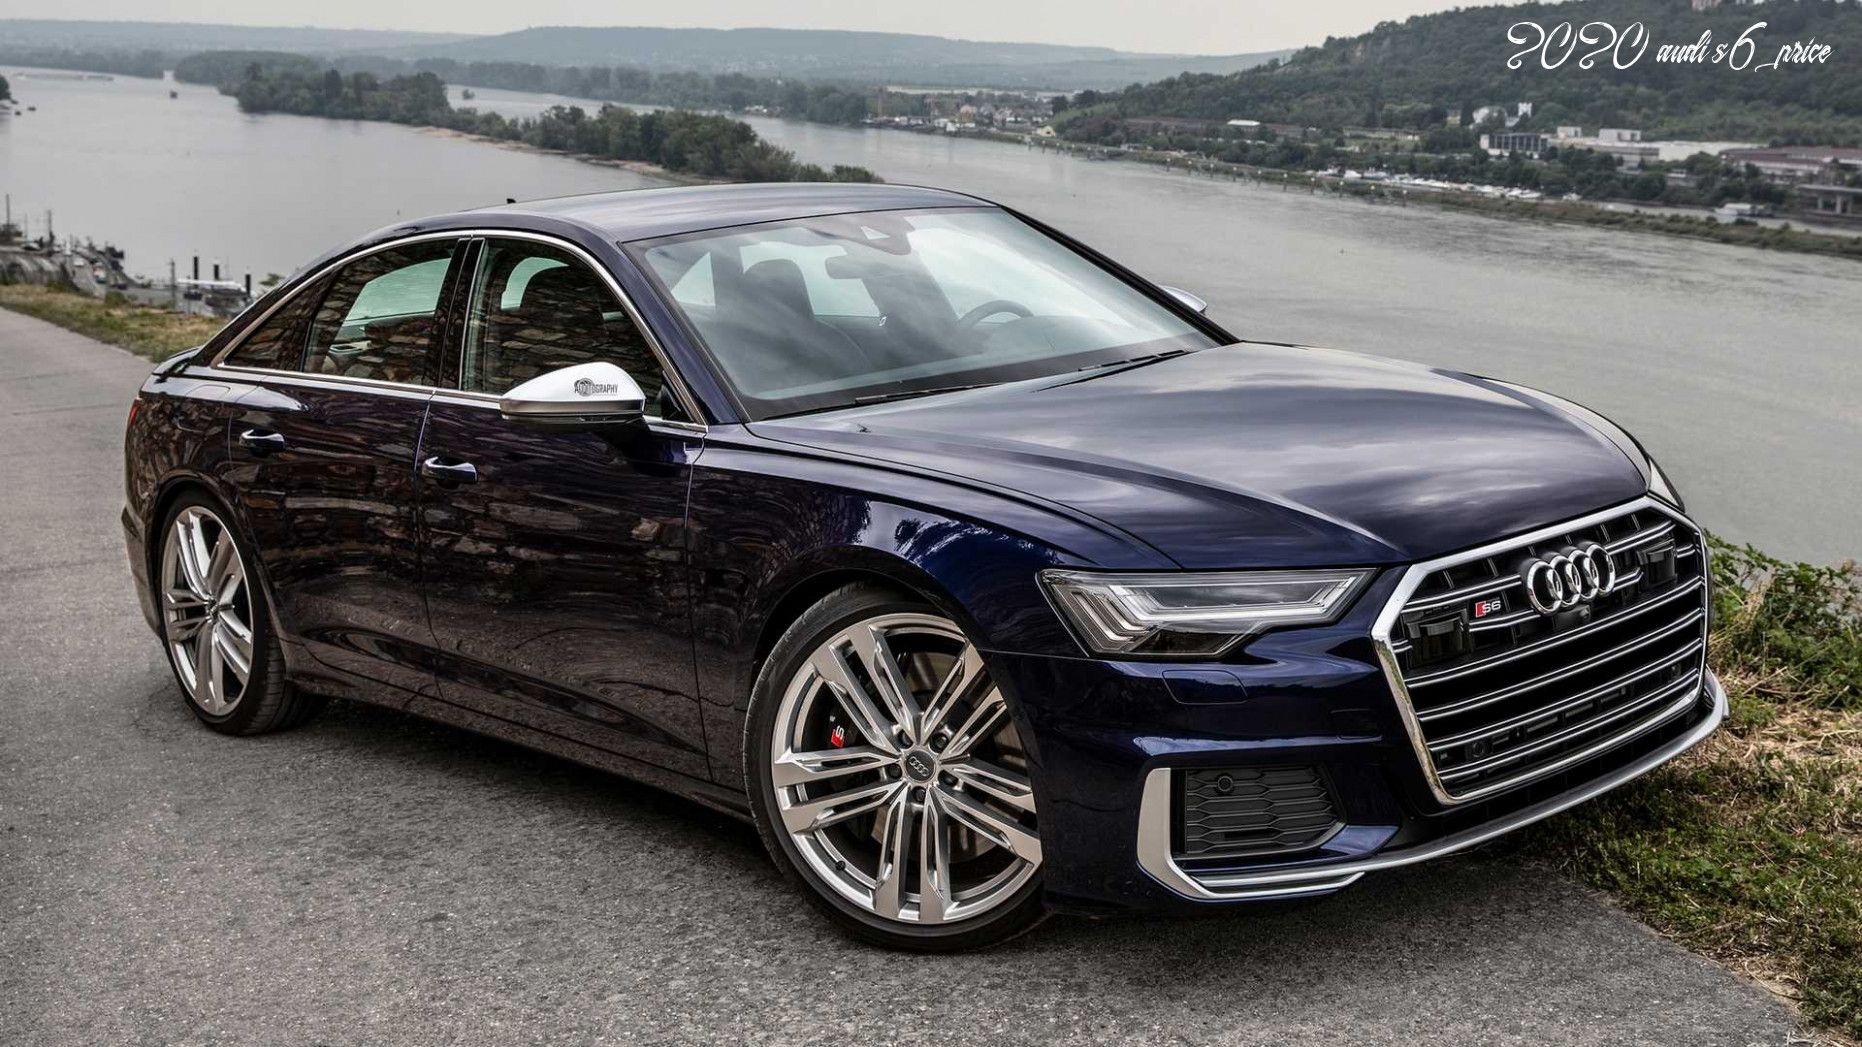 2020 Audi S6 Price Images In 2020 Audi S6 Audi Car